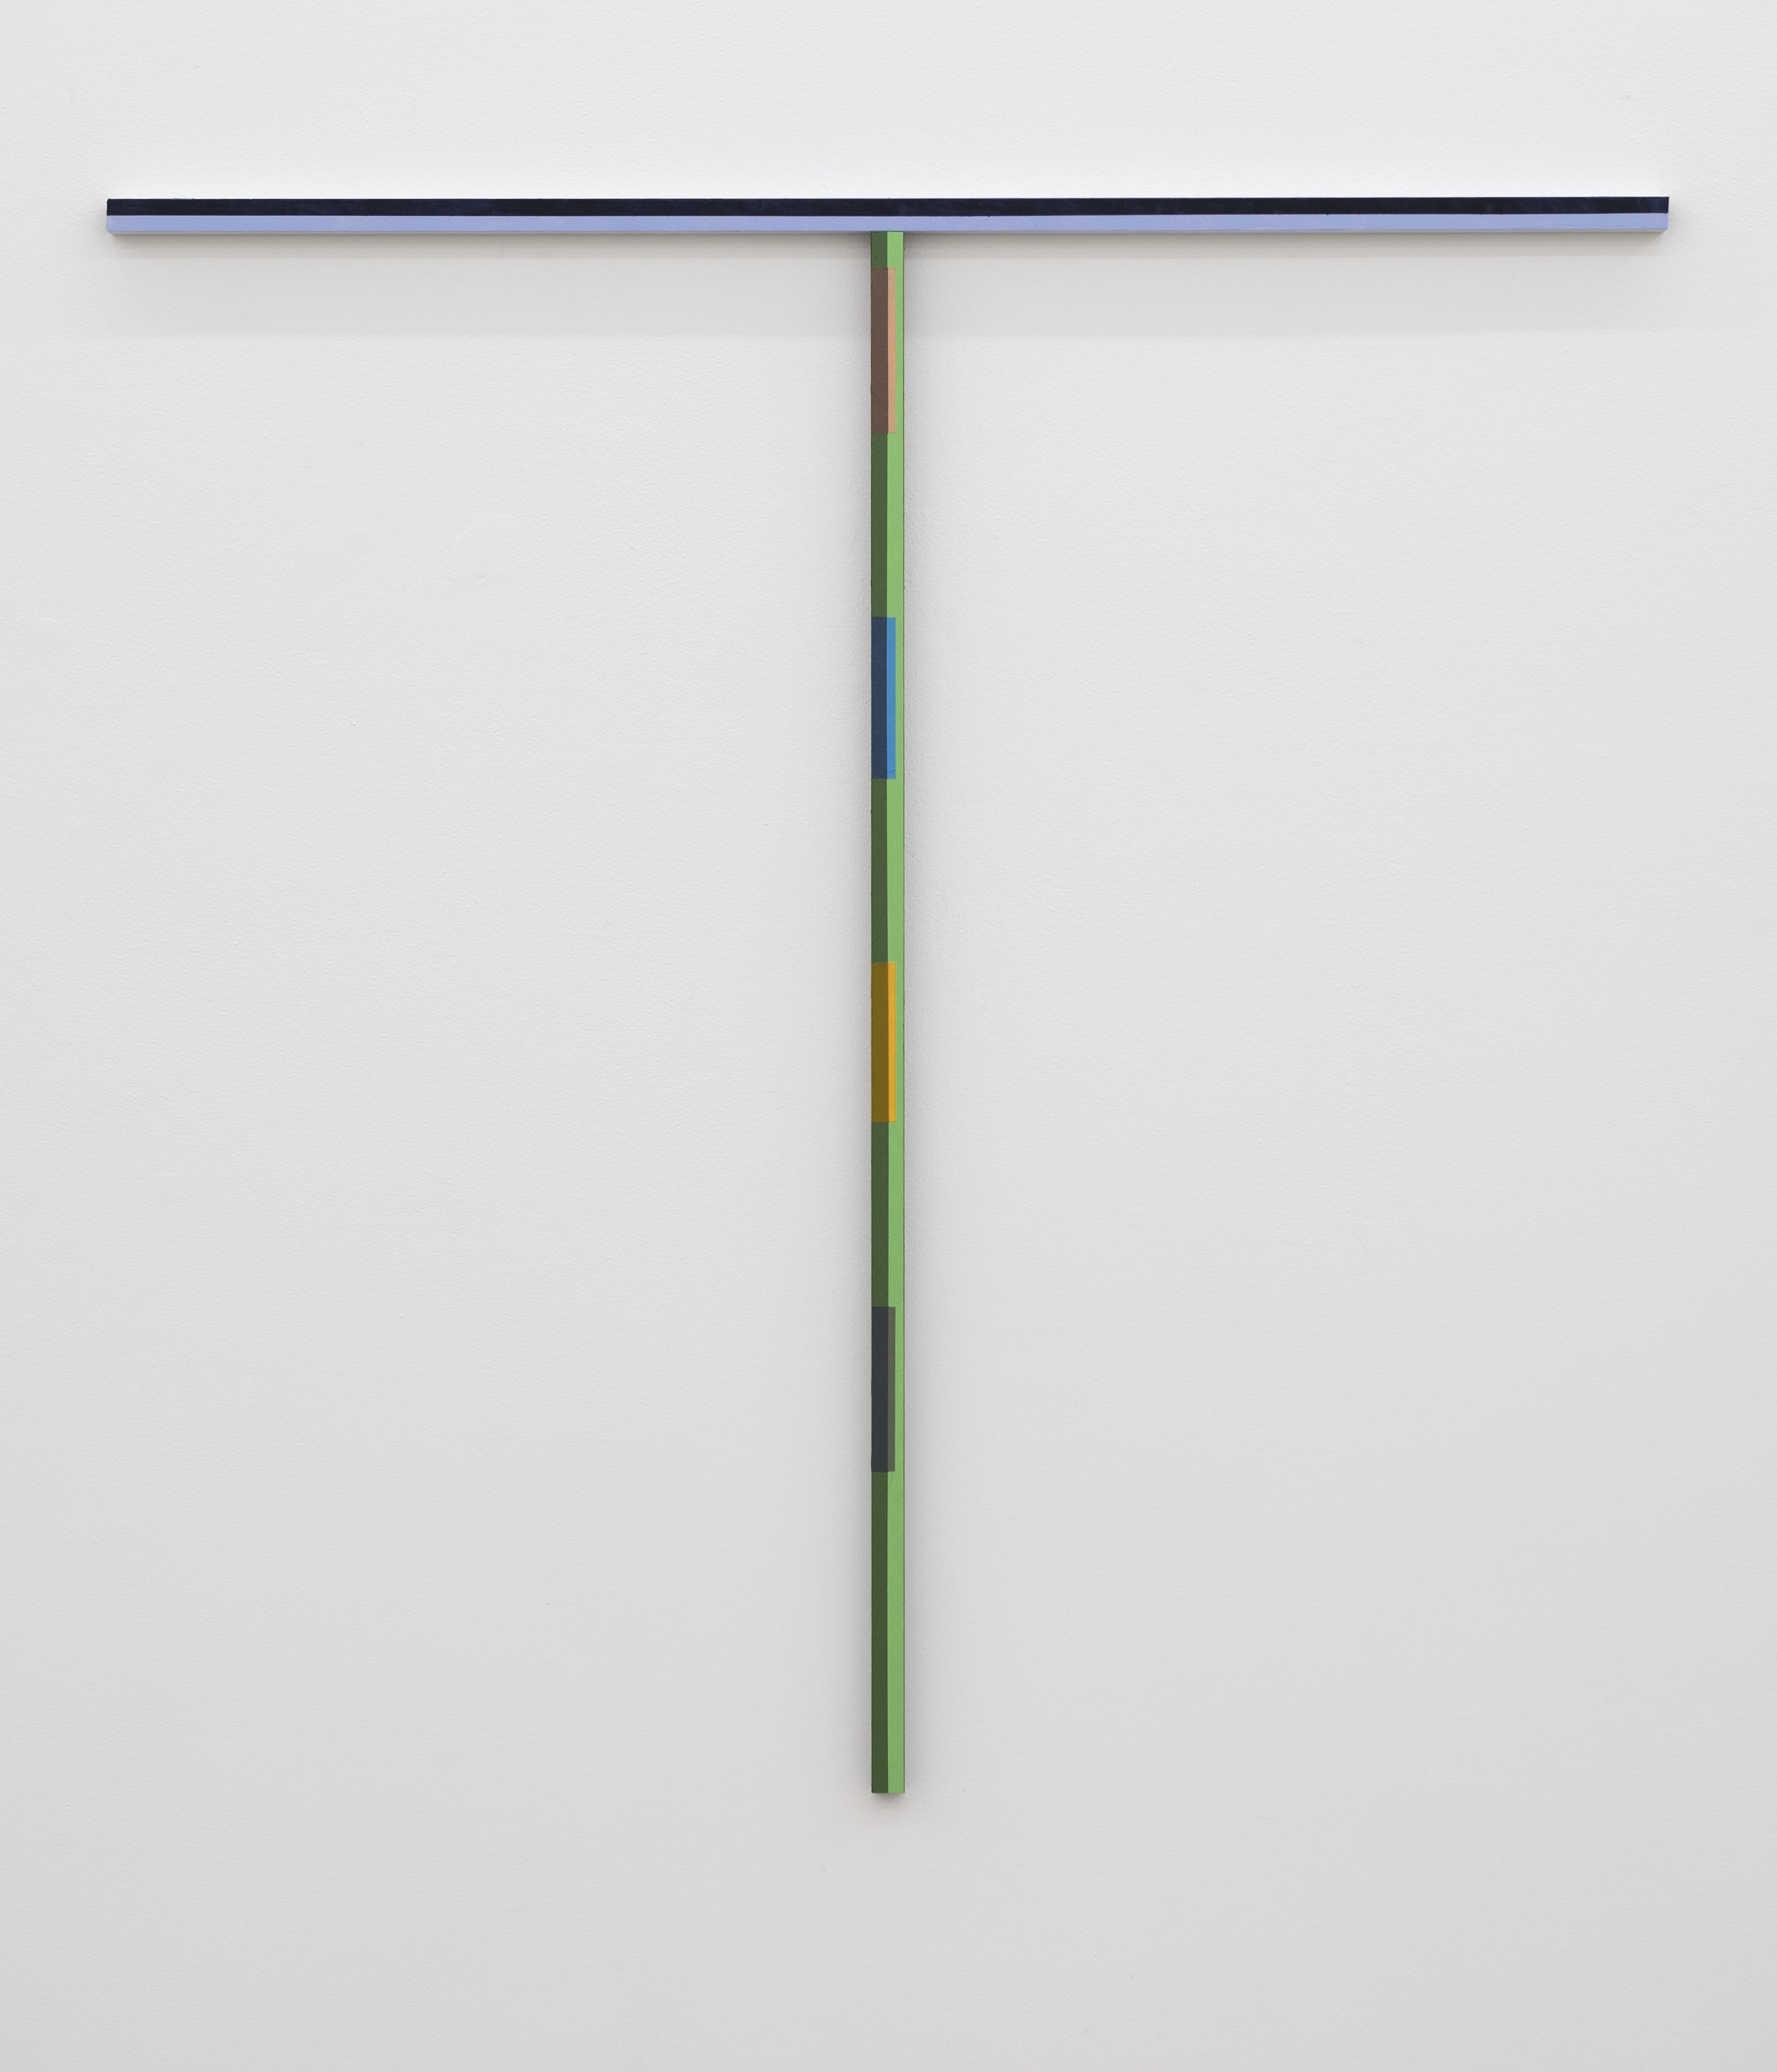 Tony Larson  Proposal for a New Cross(T is for Tony) , 2018 flashe, acrylic, traffic marker paint on steel 49h x 48w x 1d in